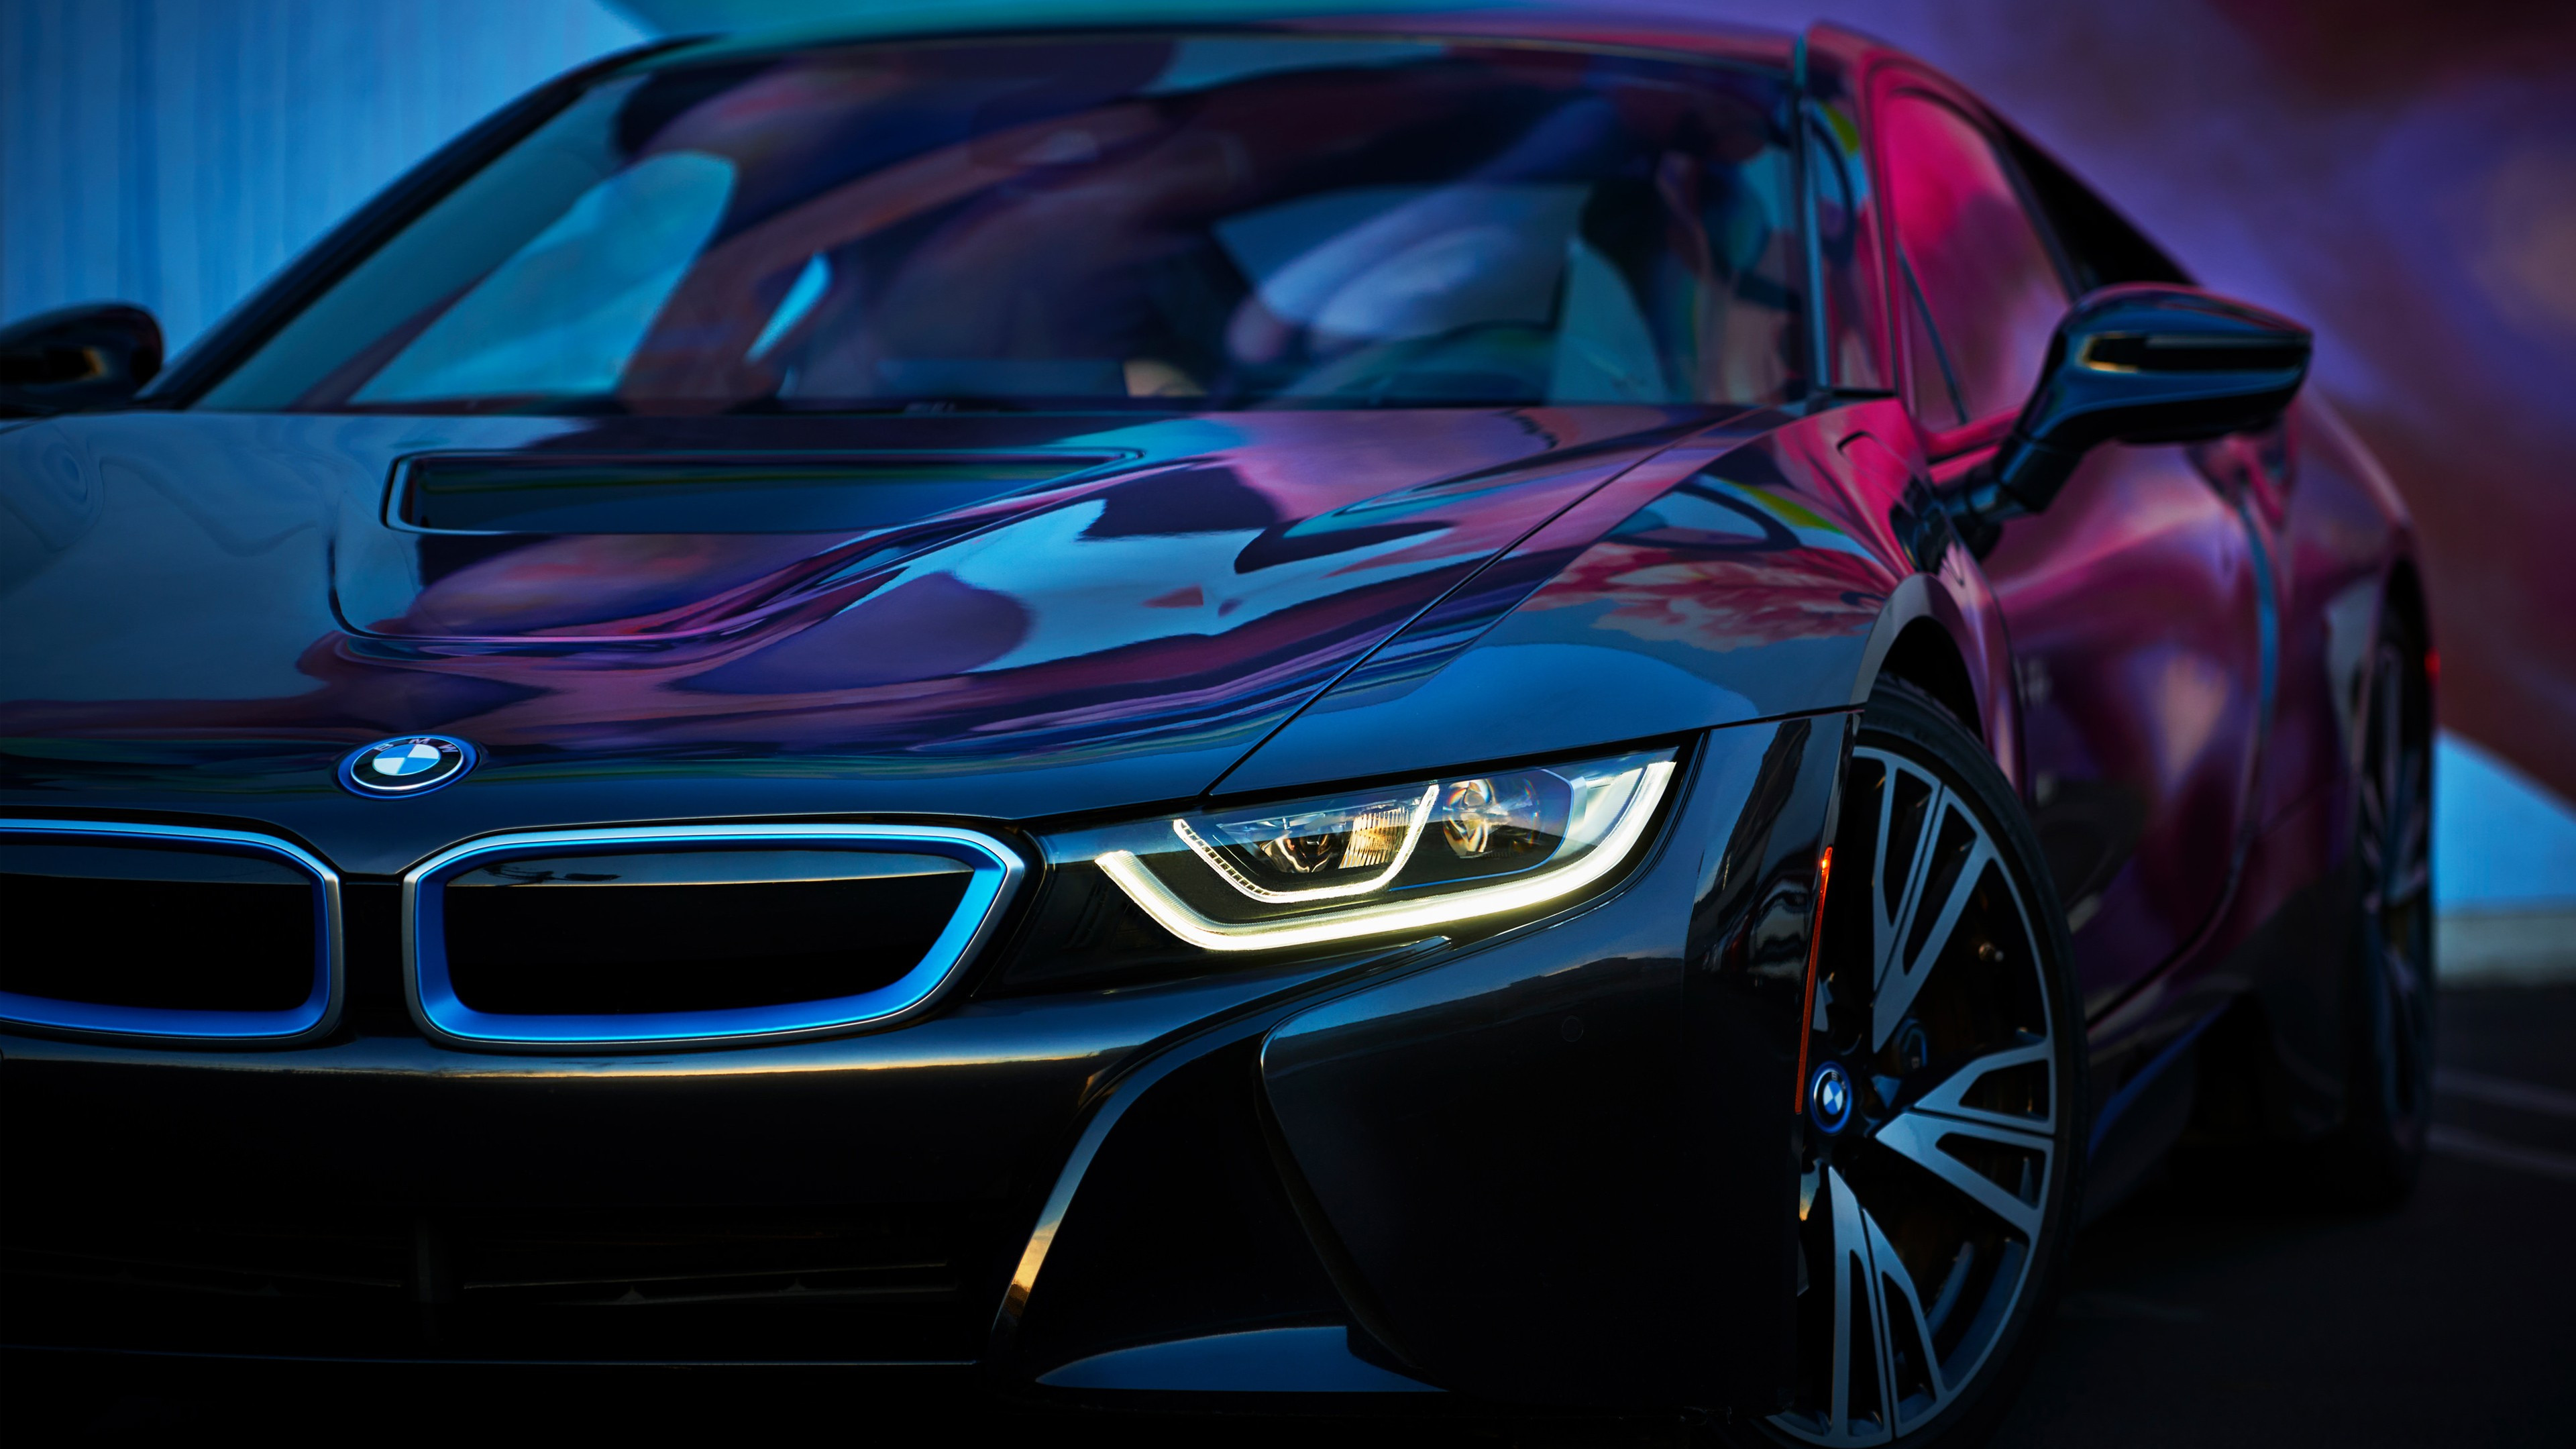 BMW i8 wallpaper 3840x2160